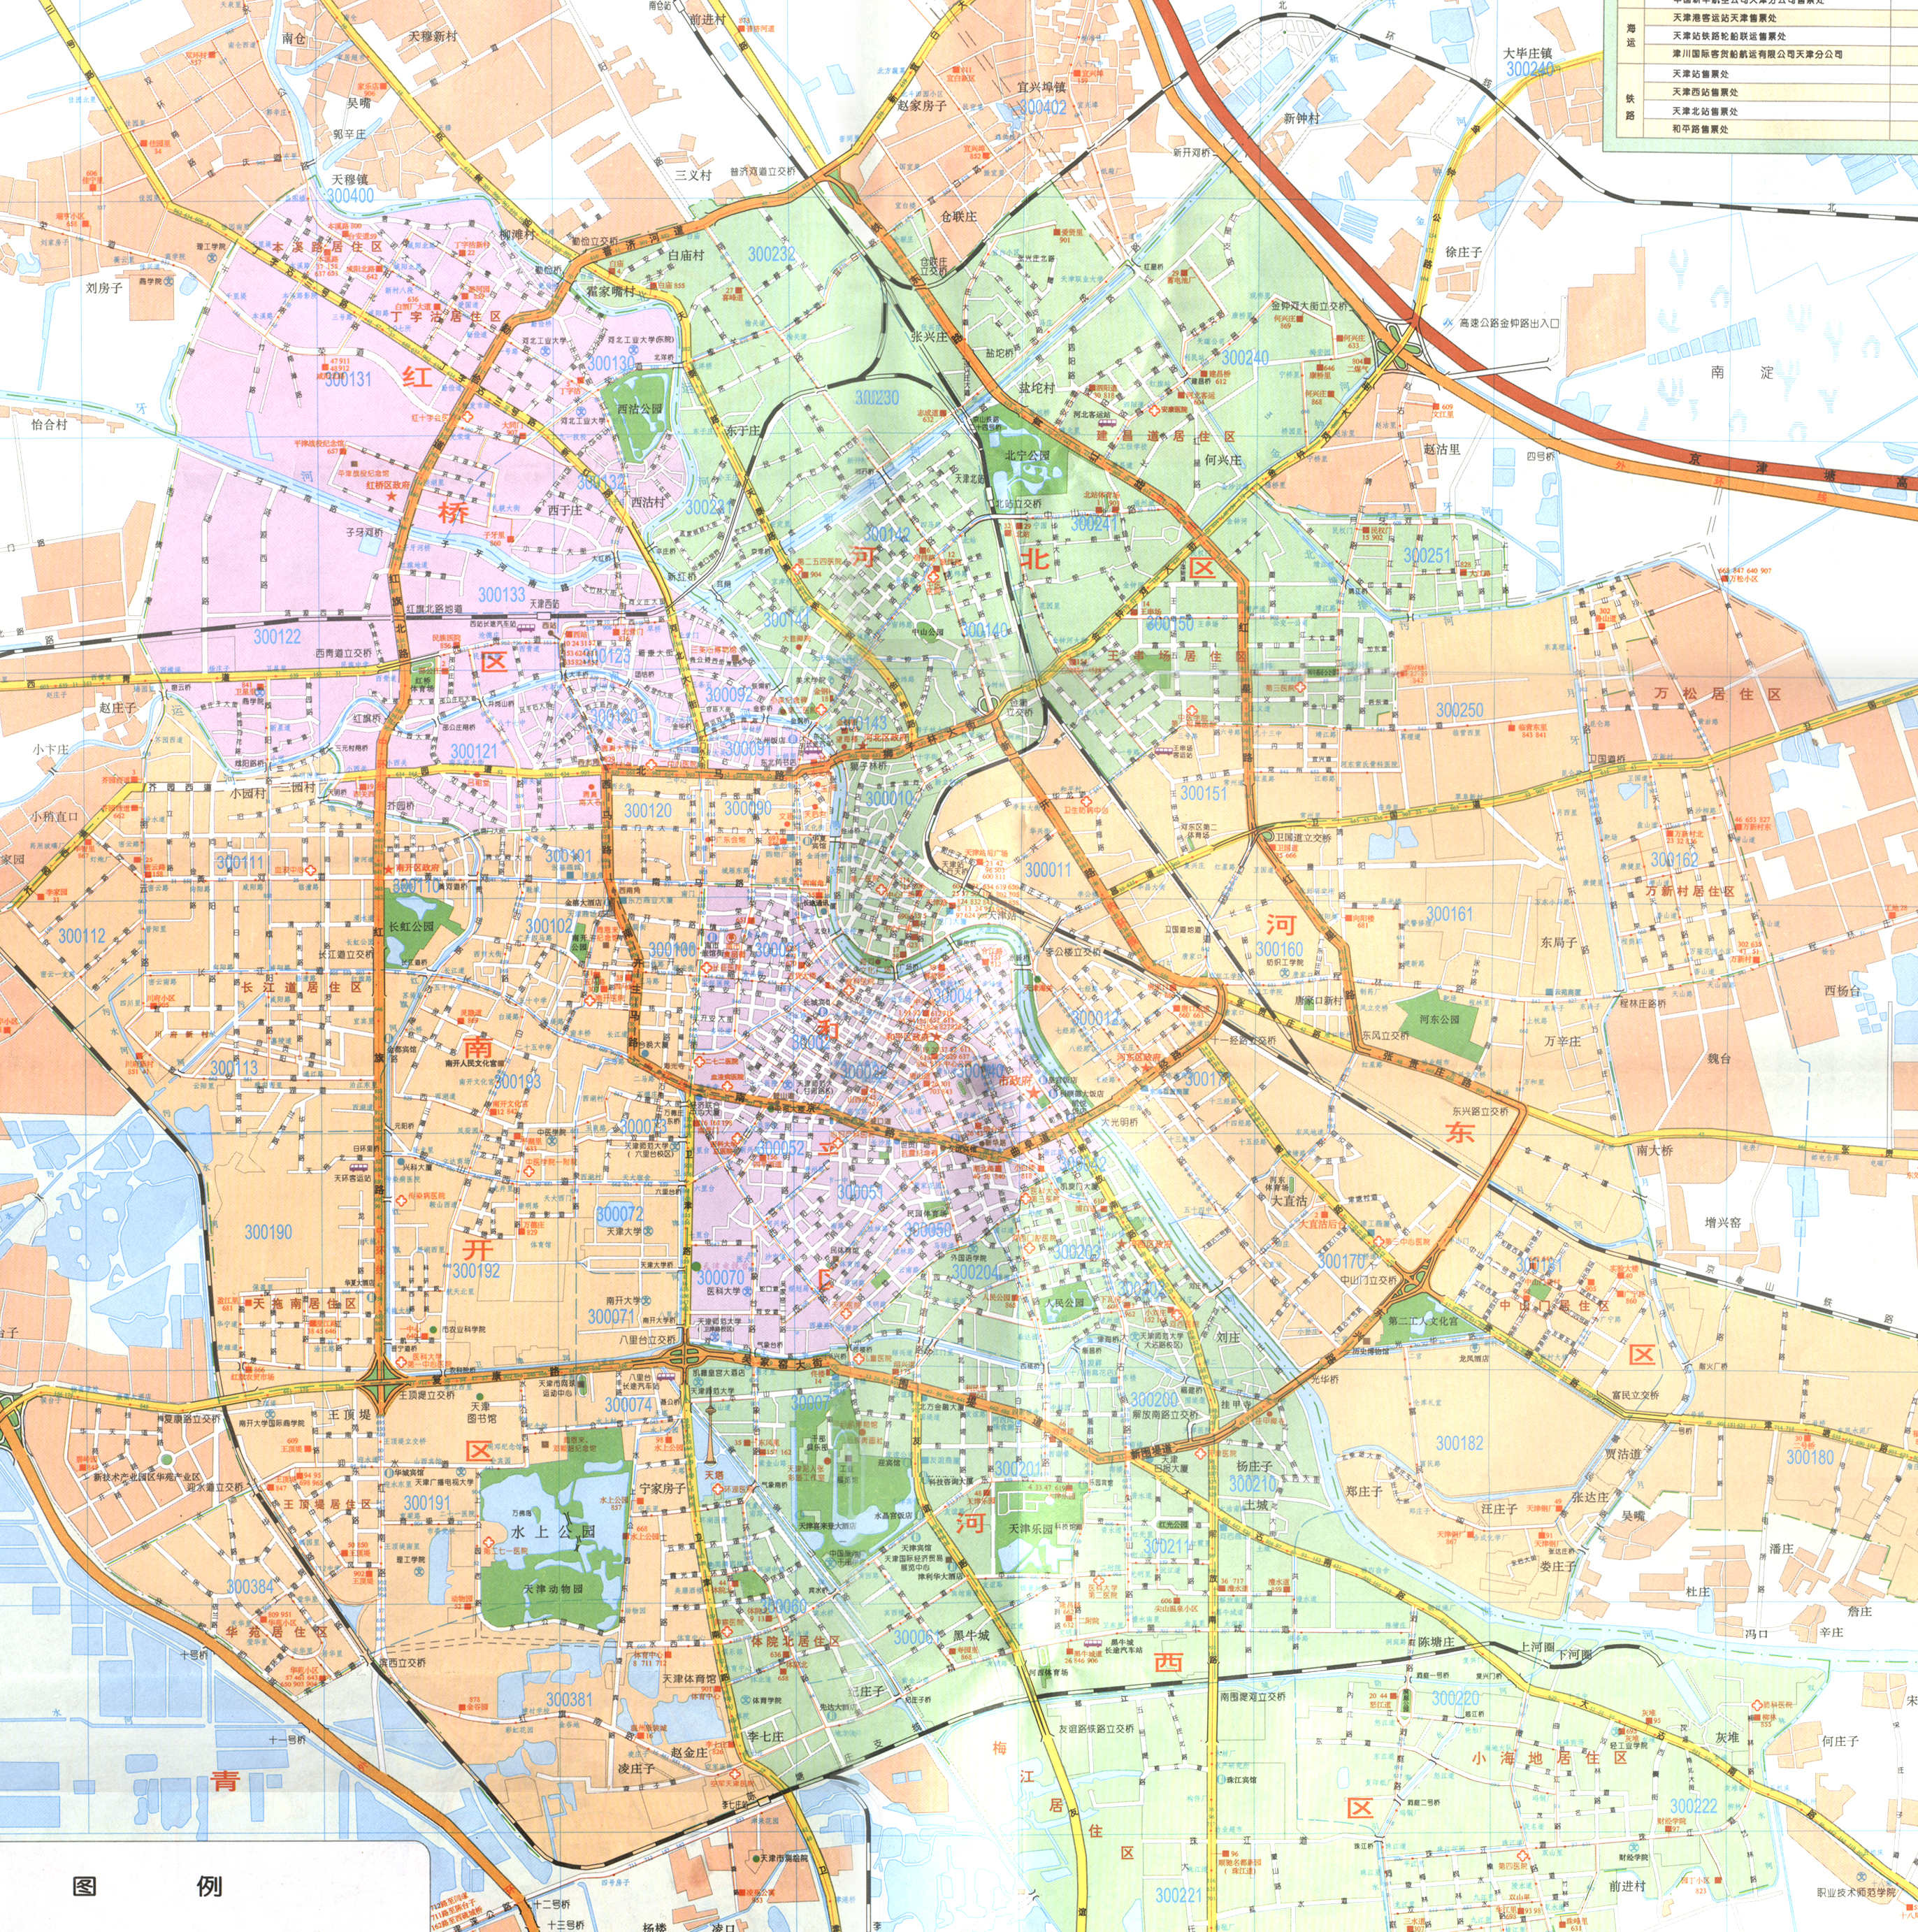 Tianjin city mapmapchina mapshenzhen mapworld mapcap lampsled tianjin city map gumiabroncs Image collections